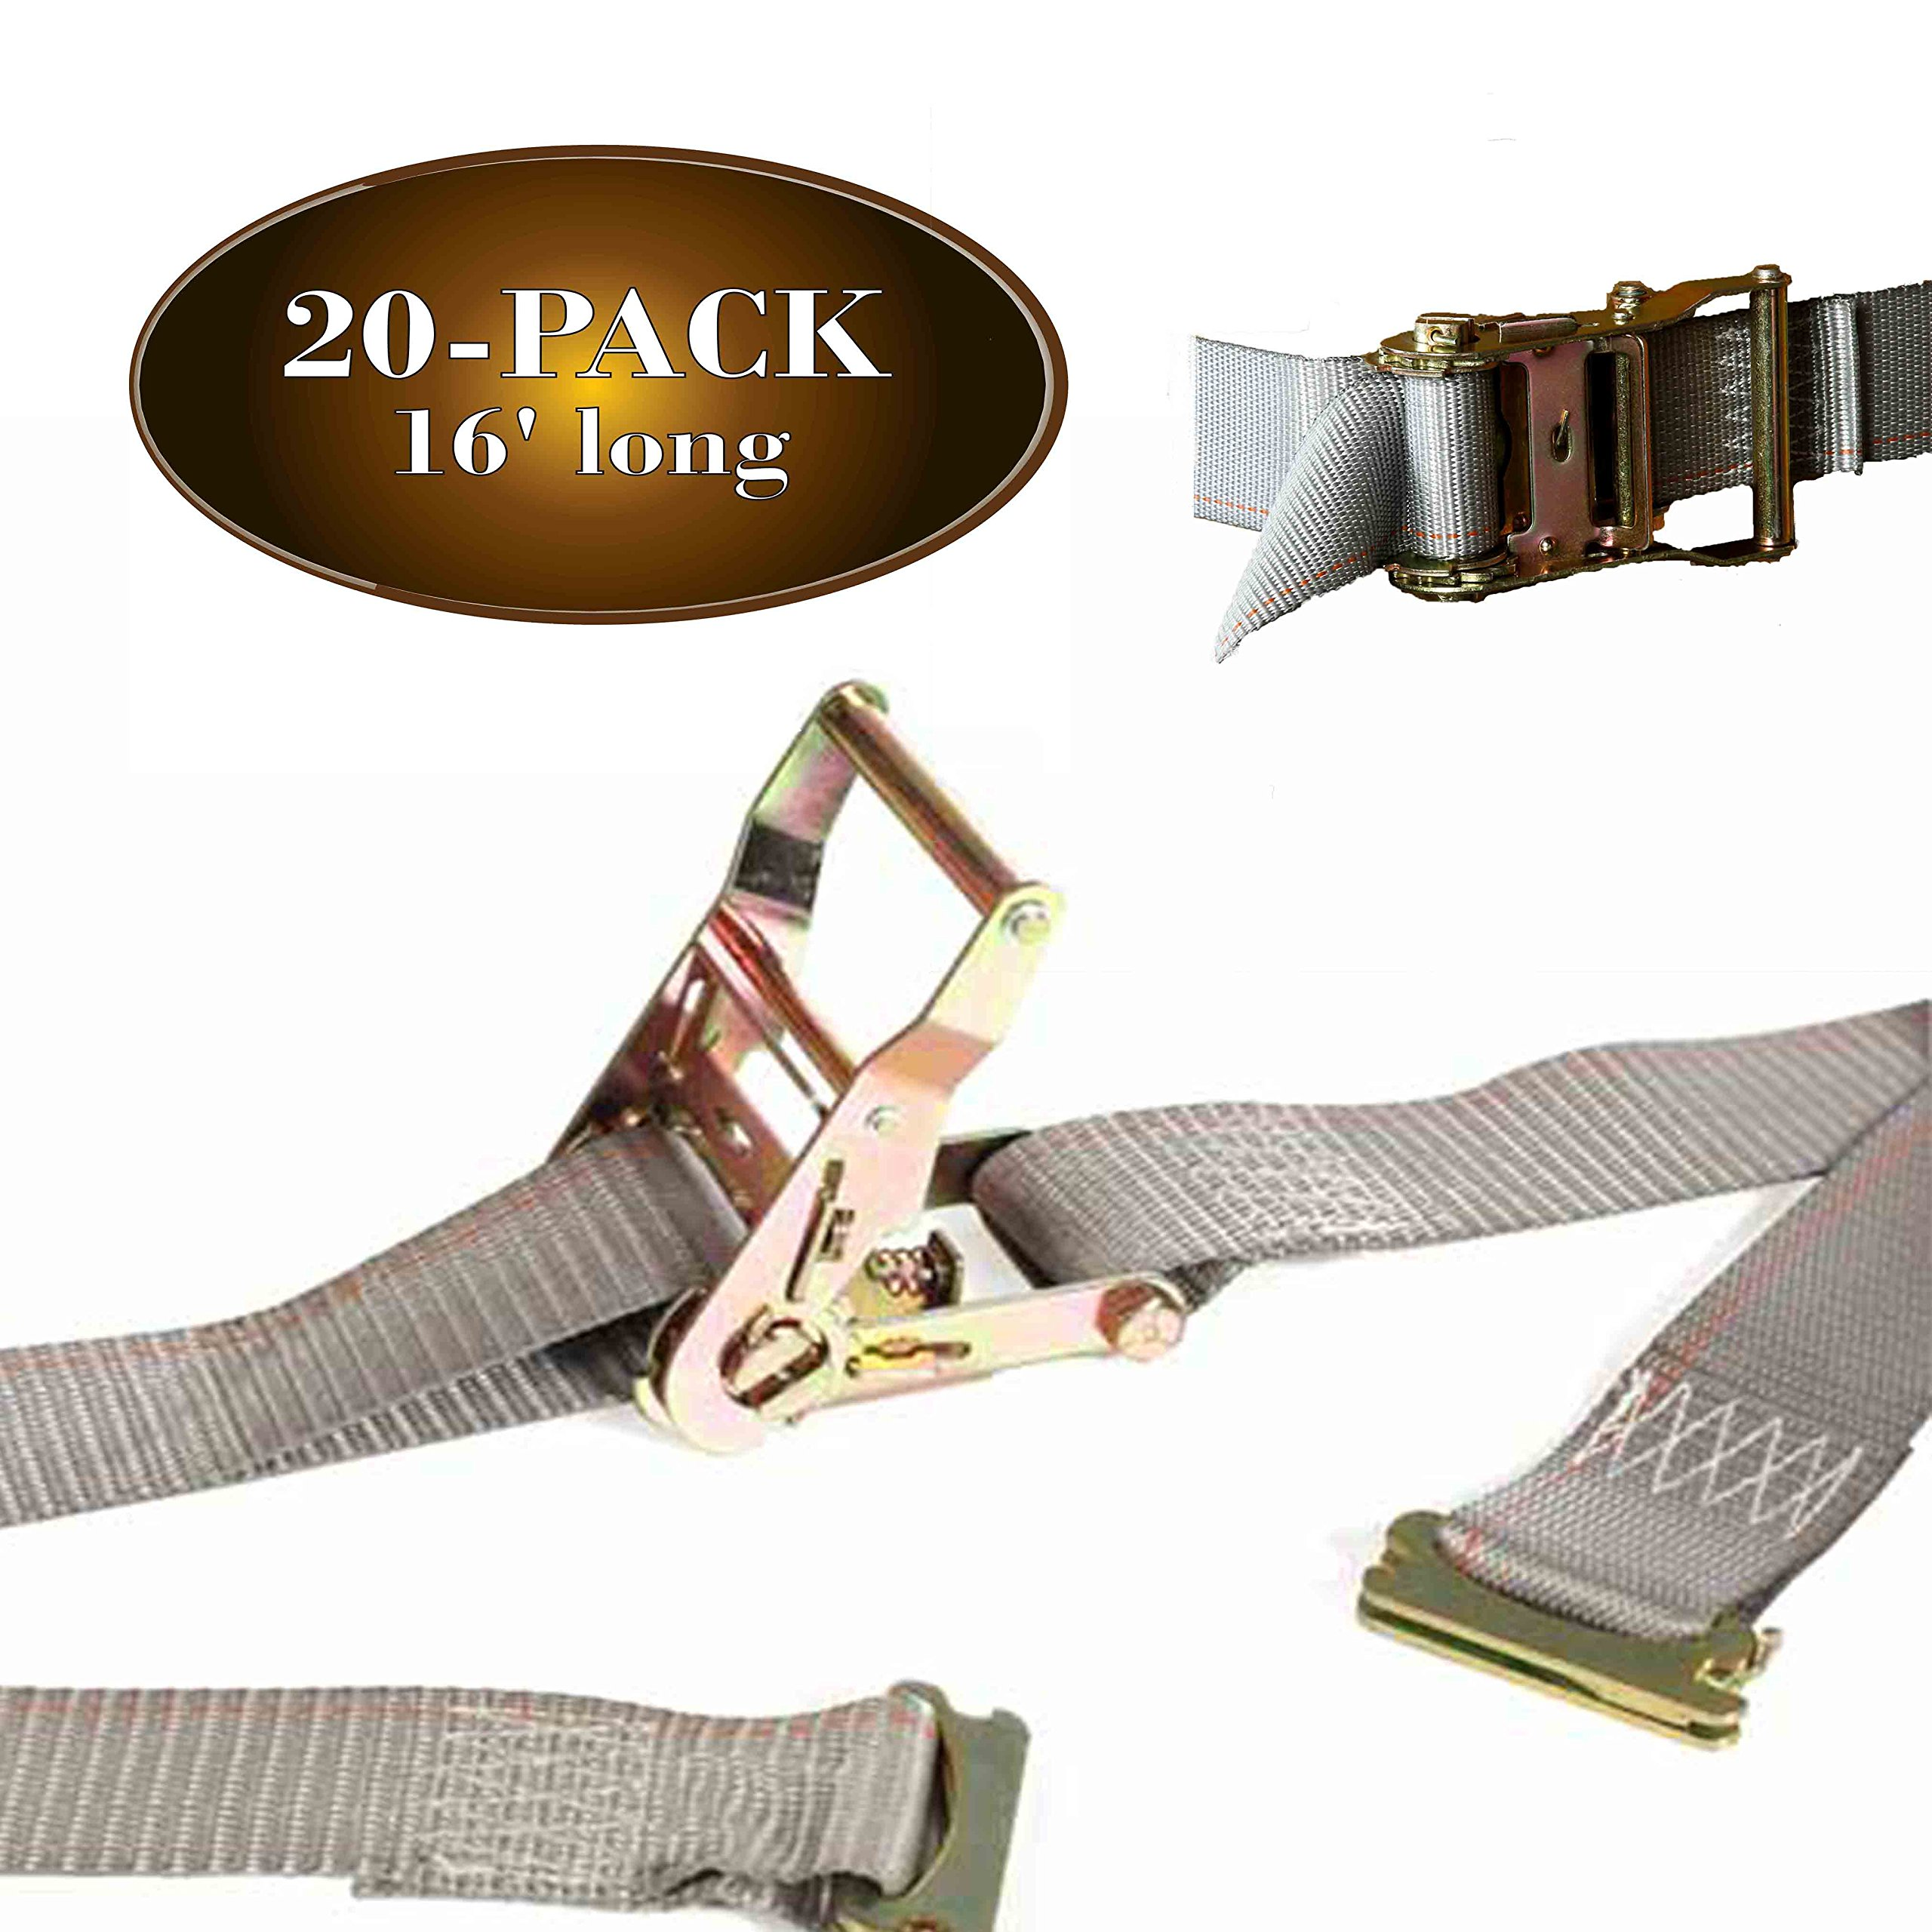 20 E Track Ratchet Tie-Down Cargo Straps, 2'' x 16' Durable Ratcheting Strap Cargo TieDowns, Heavy Duty Grey Polyester Tie-Downs, ETrack Spring Fittings